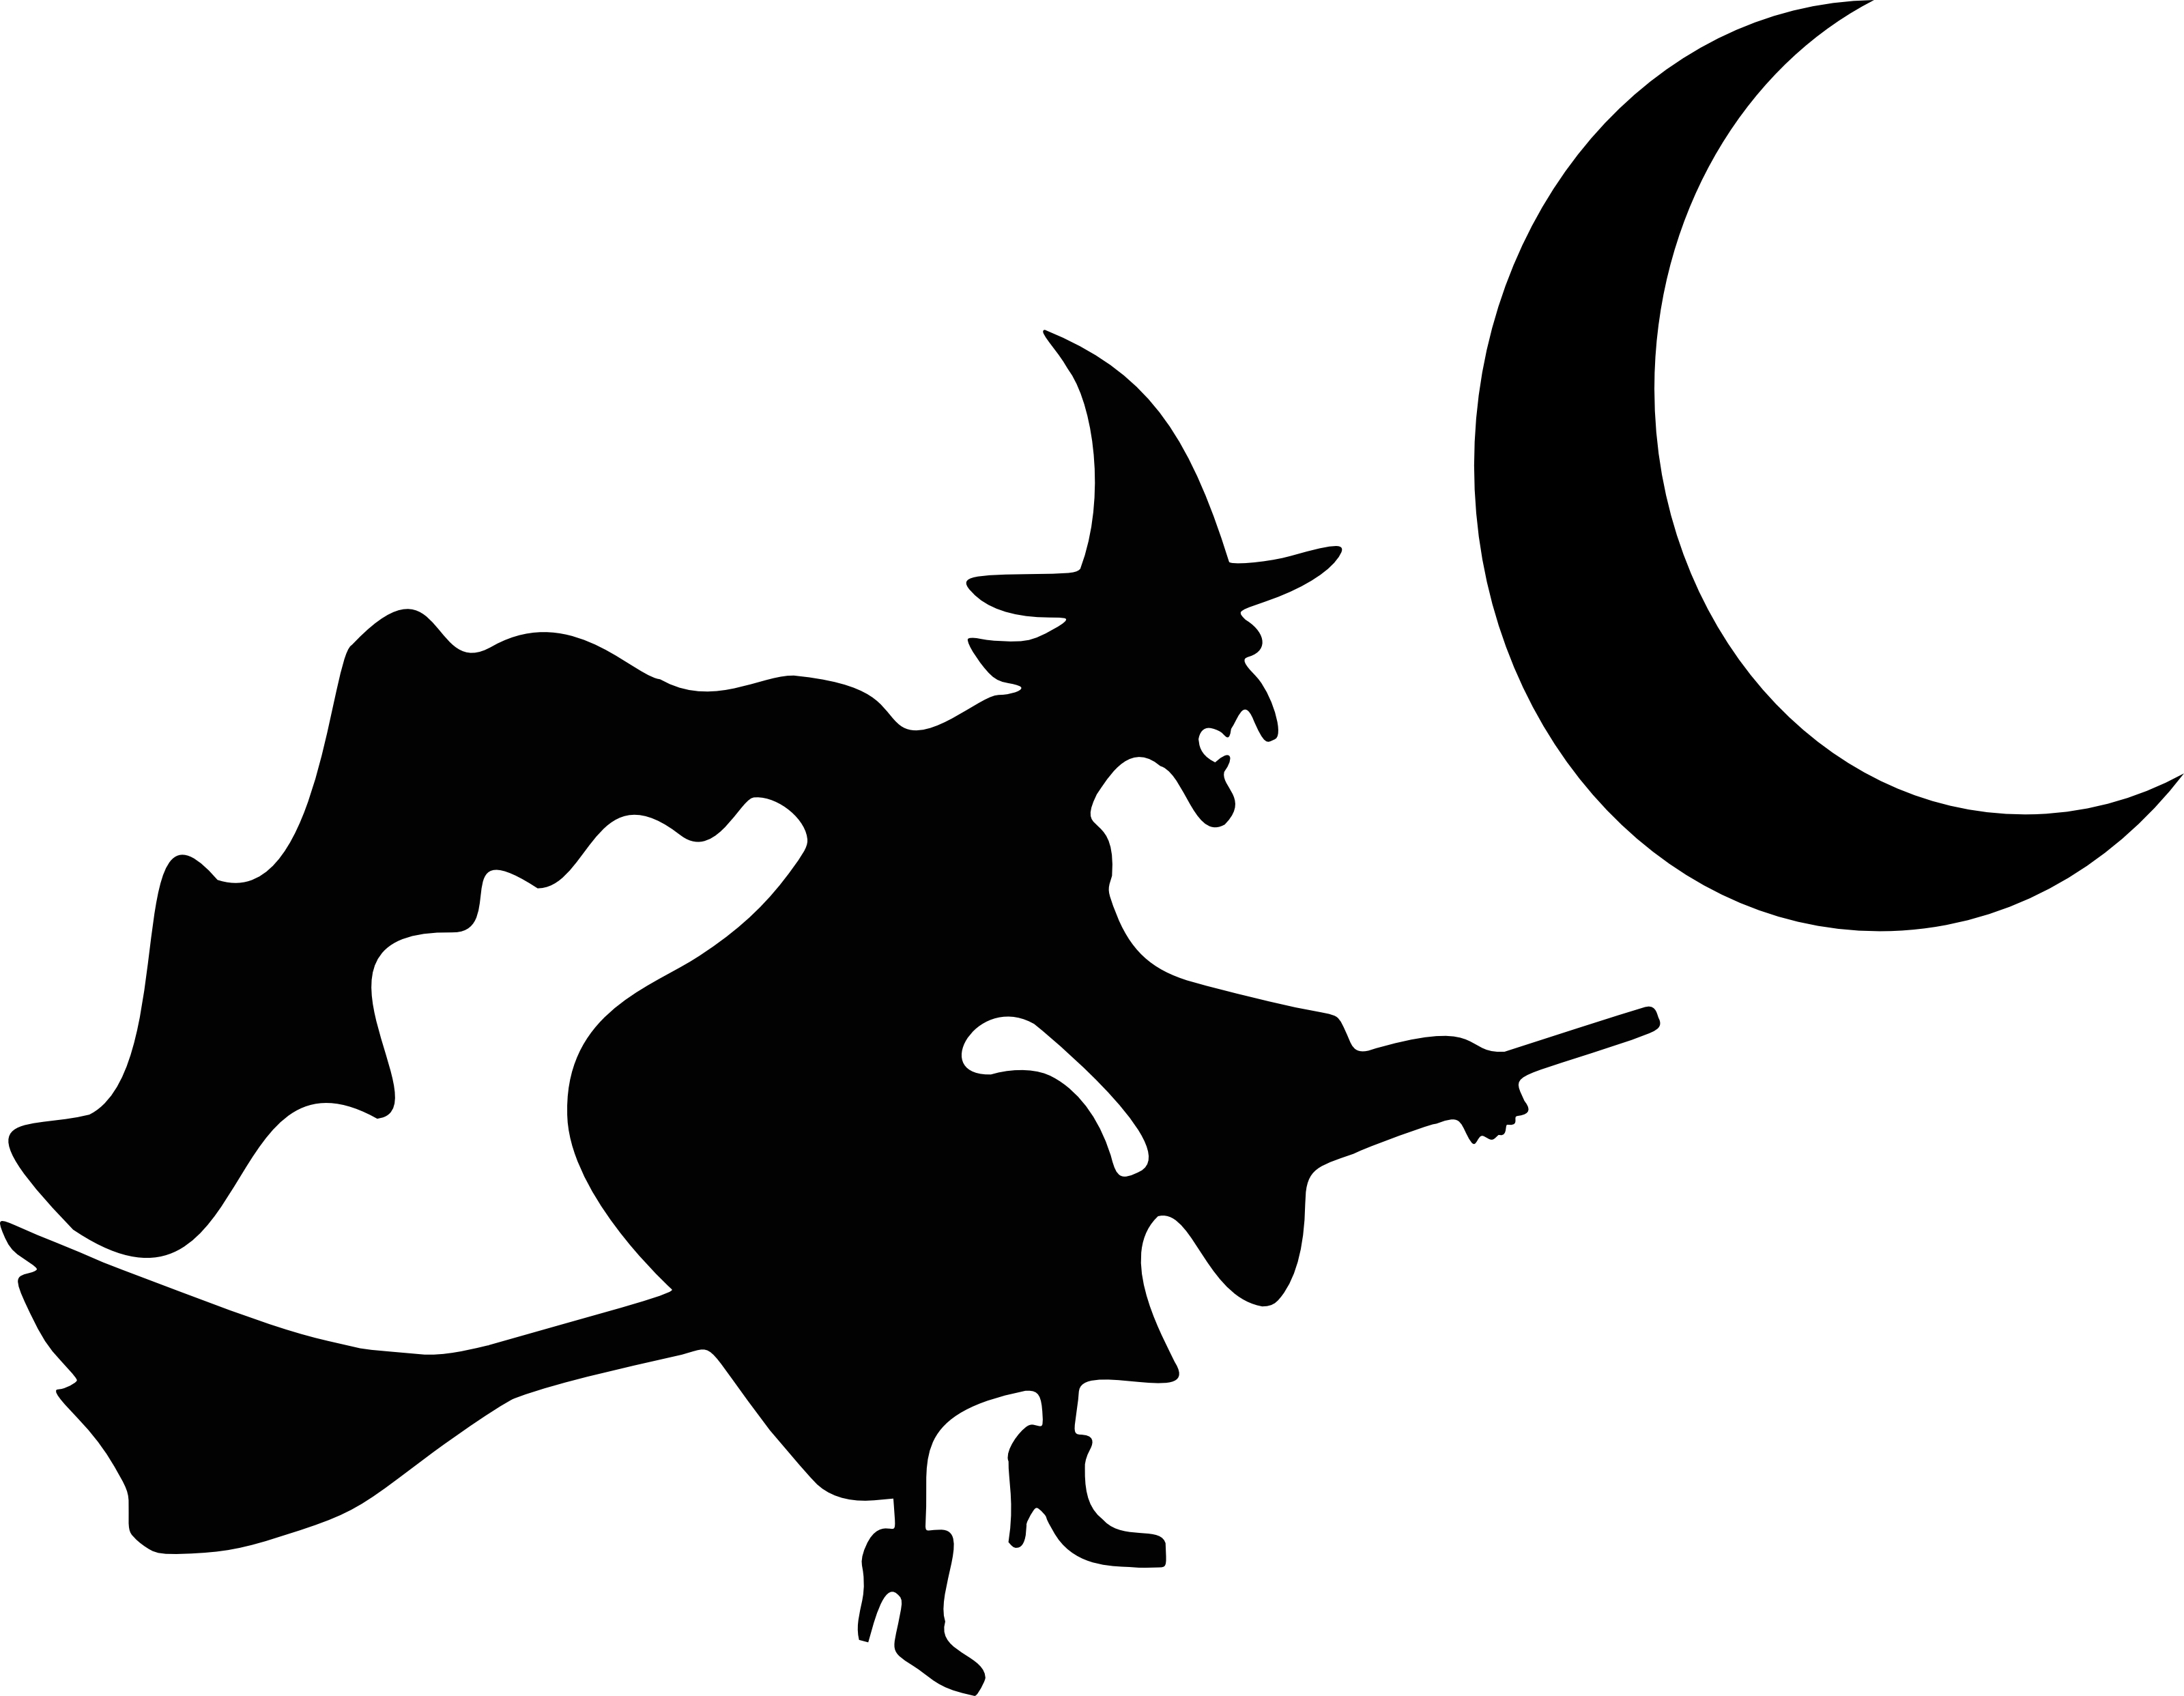 3200x2485 Broom Silhouette Halloween Witches Halloween Amp Holidays Wizard